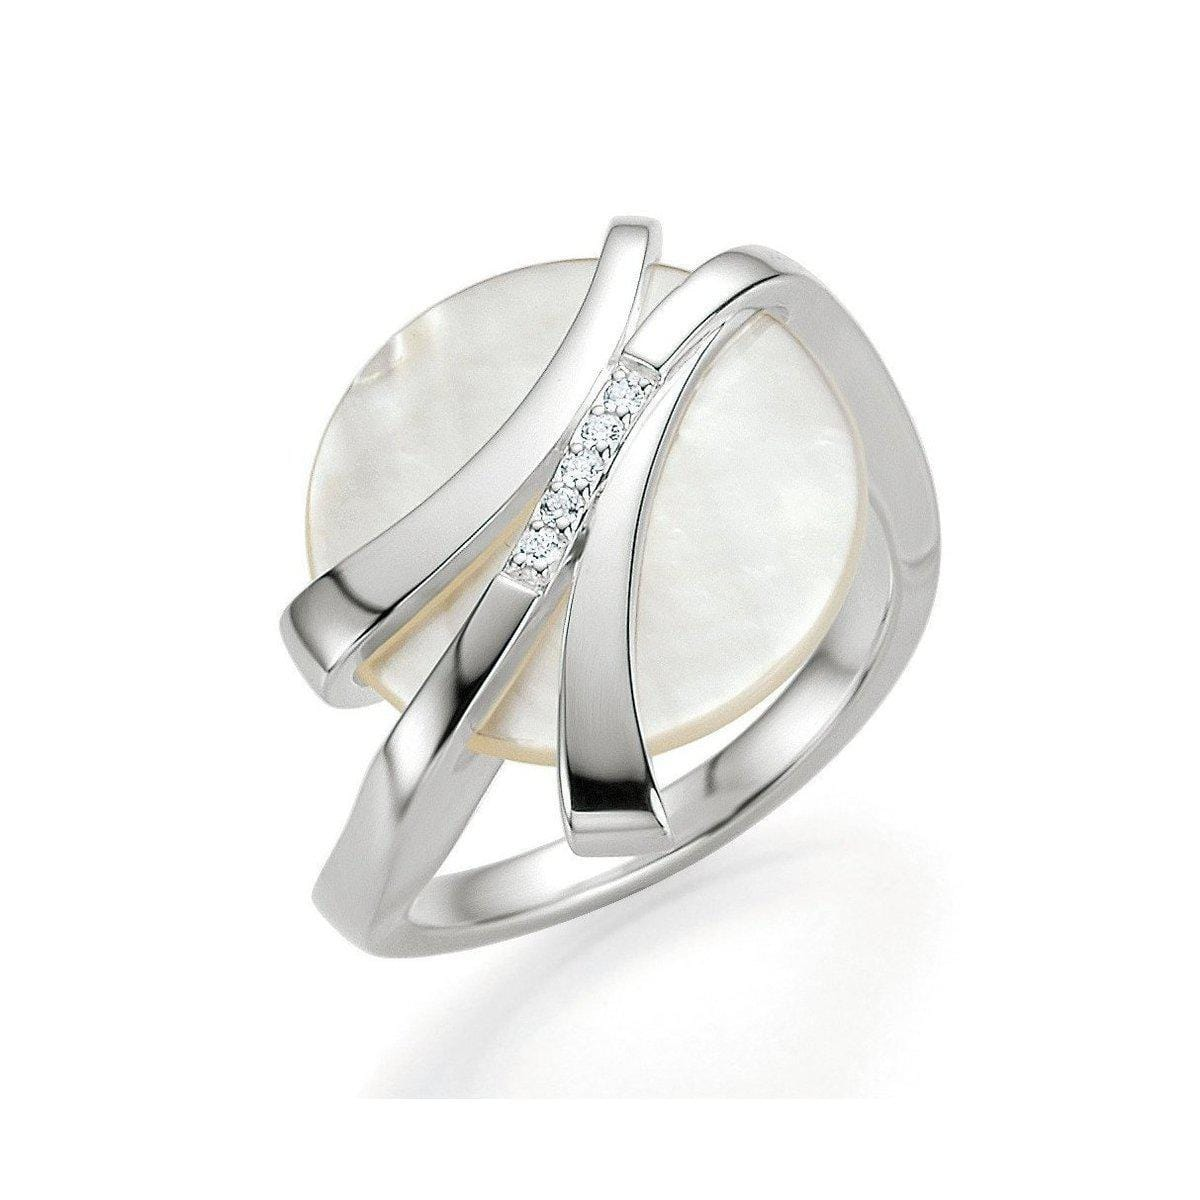 Rhodium Plated Sterling Silver Mother of Pearl and Brilliant Diamond Ring - 41/82634-Breuning-Renee Taylor Gallery